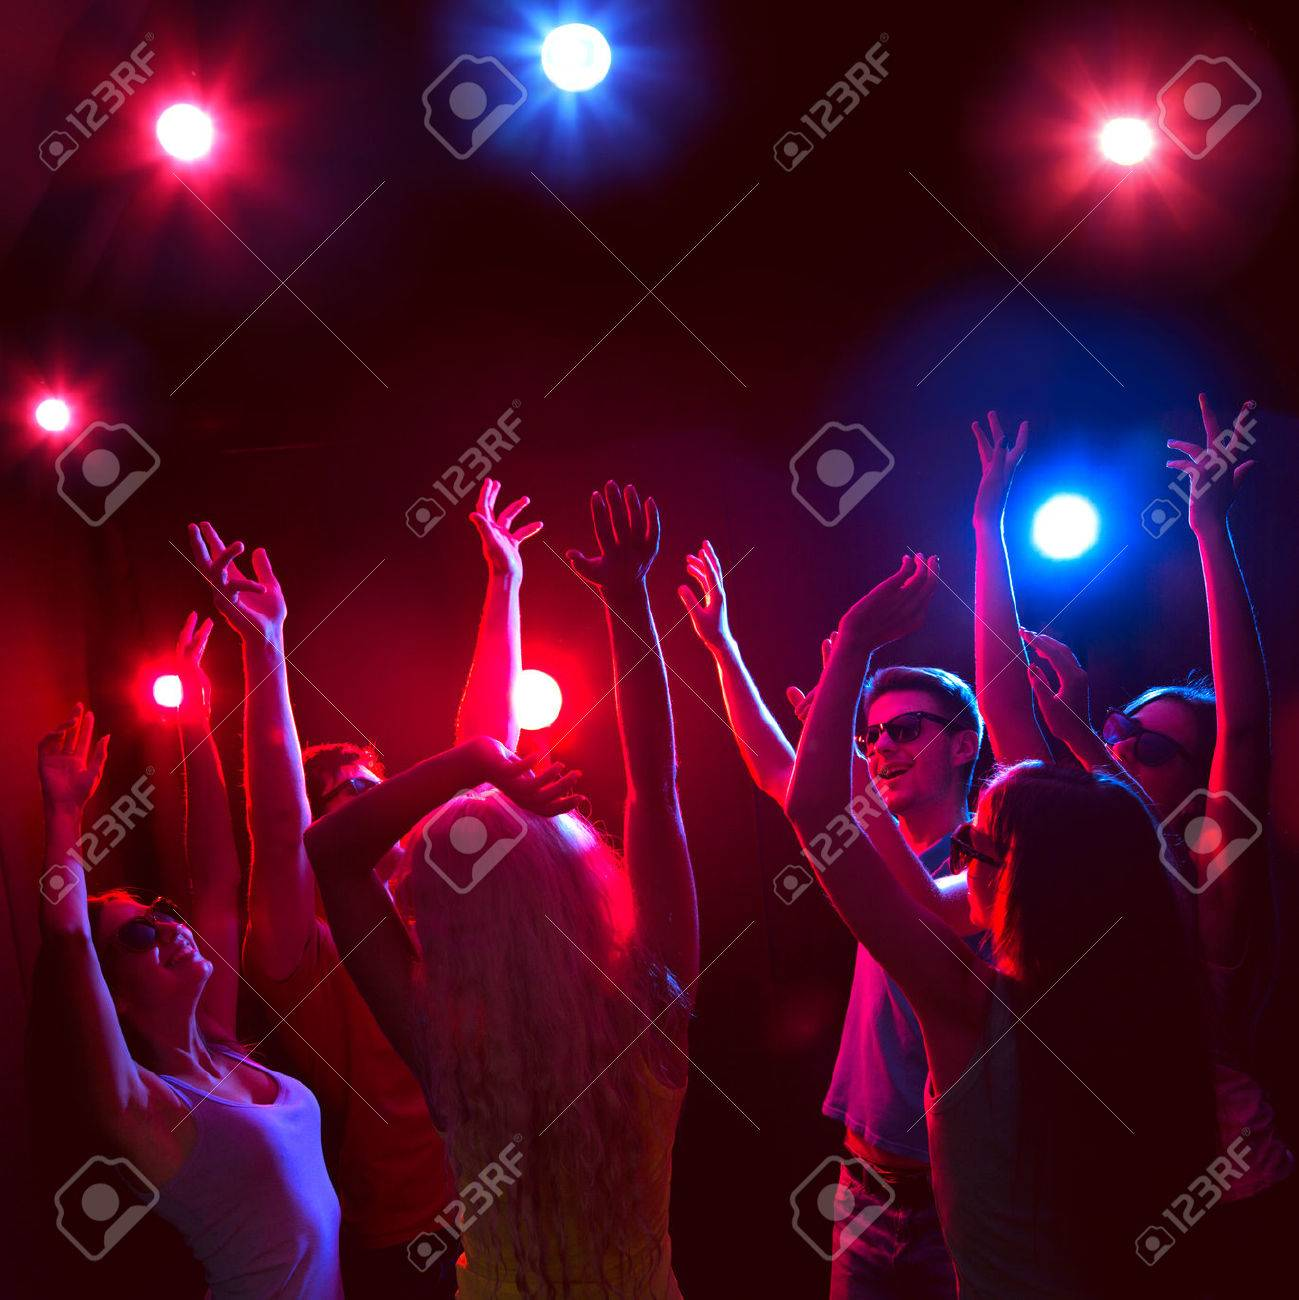 Young people having fun dancing at party. Stock Photo - 23221928